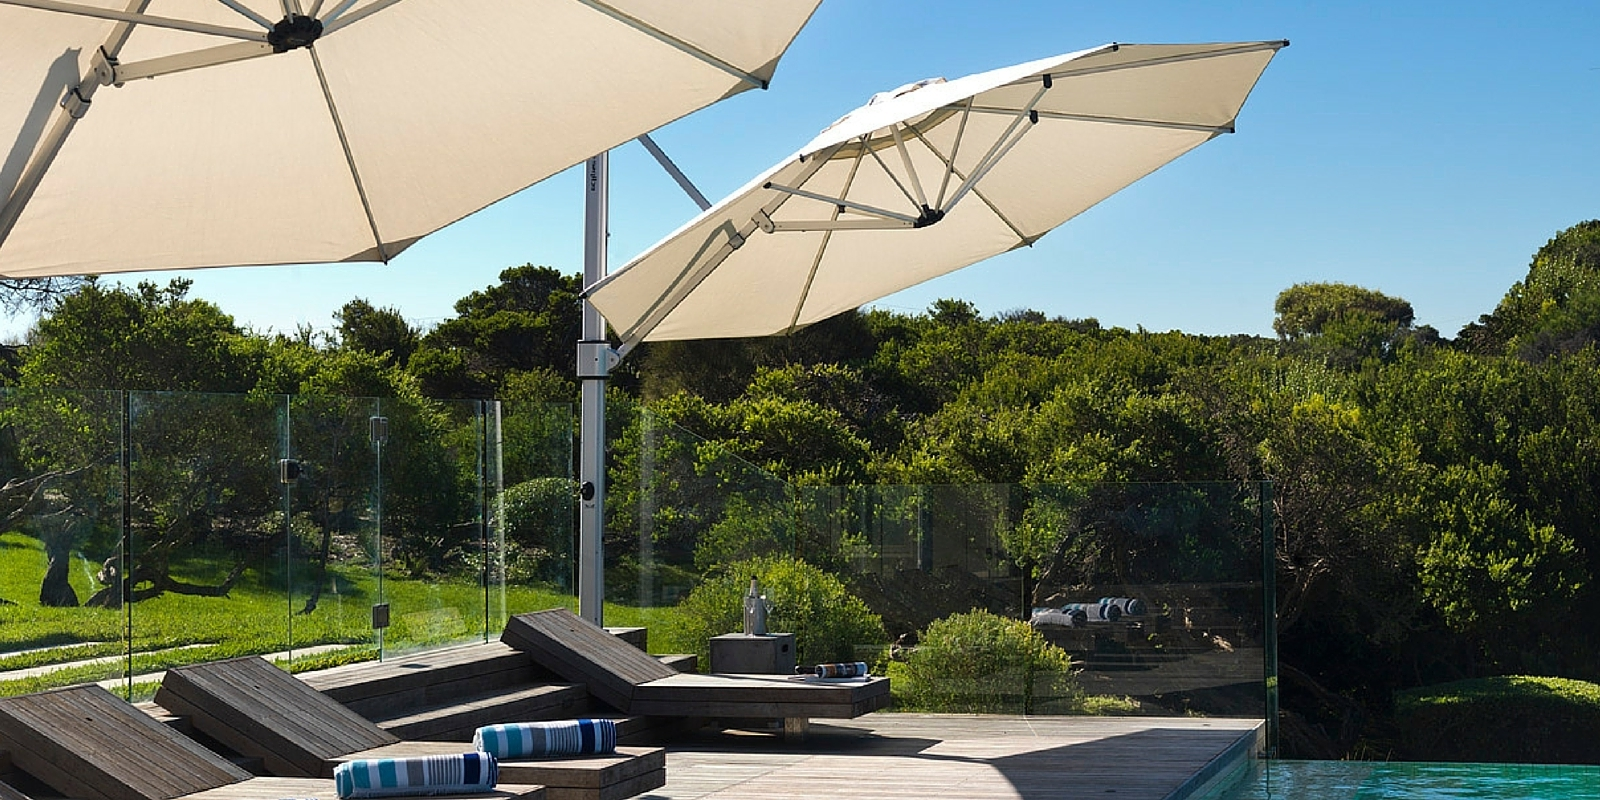 Widely Used Stay Cool With Outdoor Umbrellas With Regard To Patio Umbrellas With Wheels (View 5 of 20)